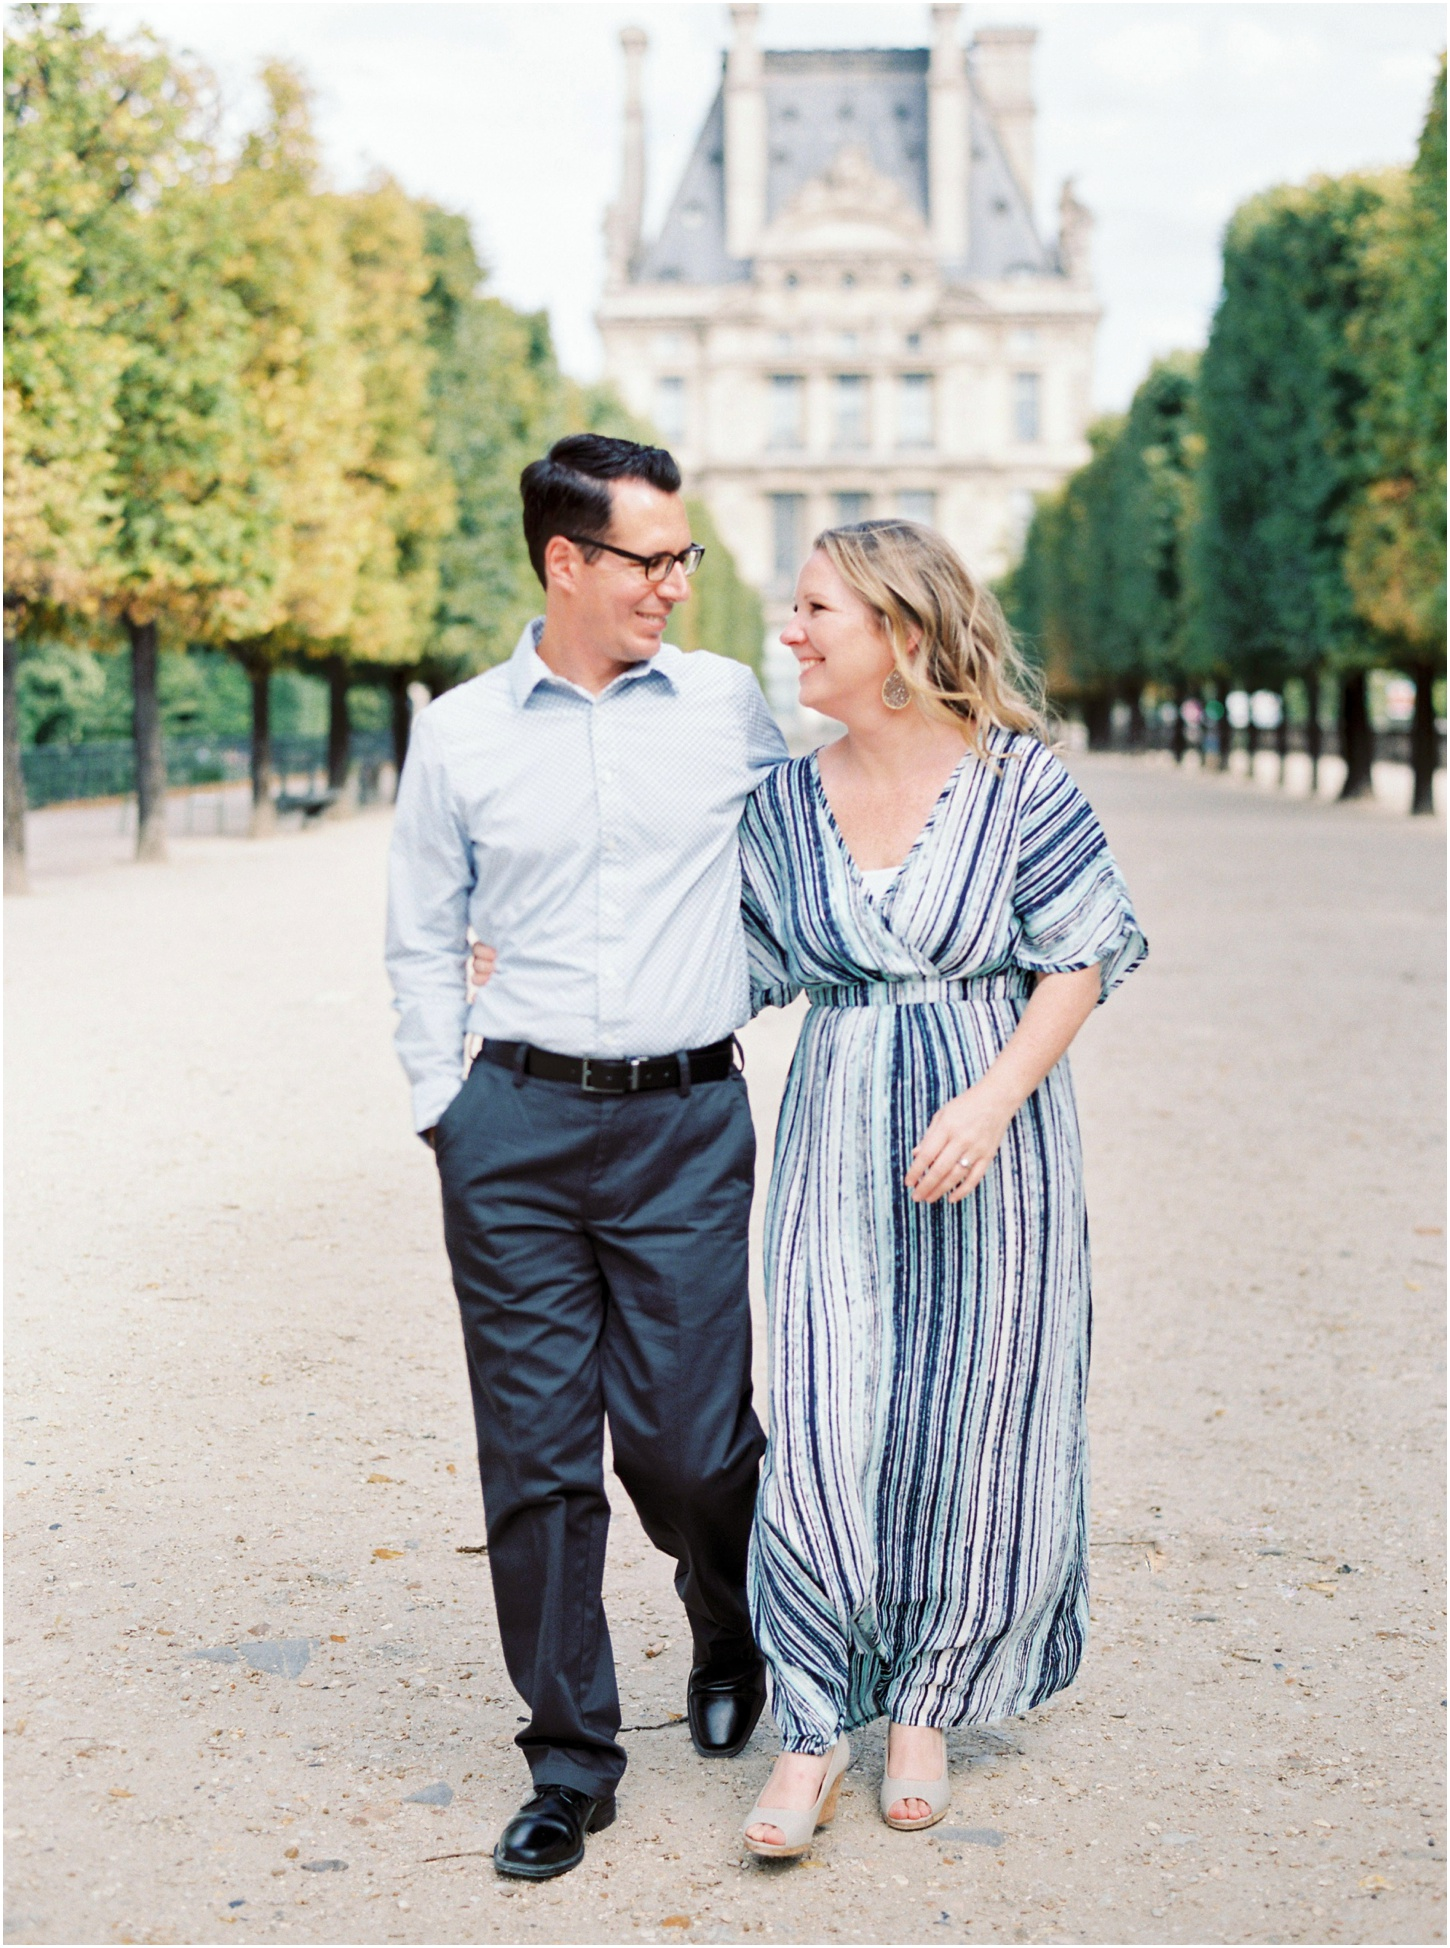 Jardin de Tuileries - nothing beats the stunning rows of trees, quiet outdoor cafes, or architectural backdrops for your romantic photo shoot in Paris!